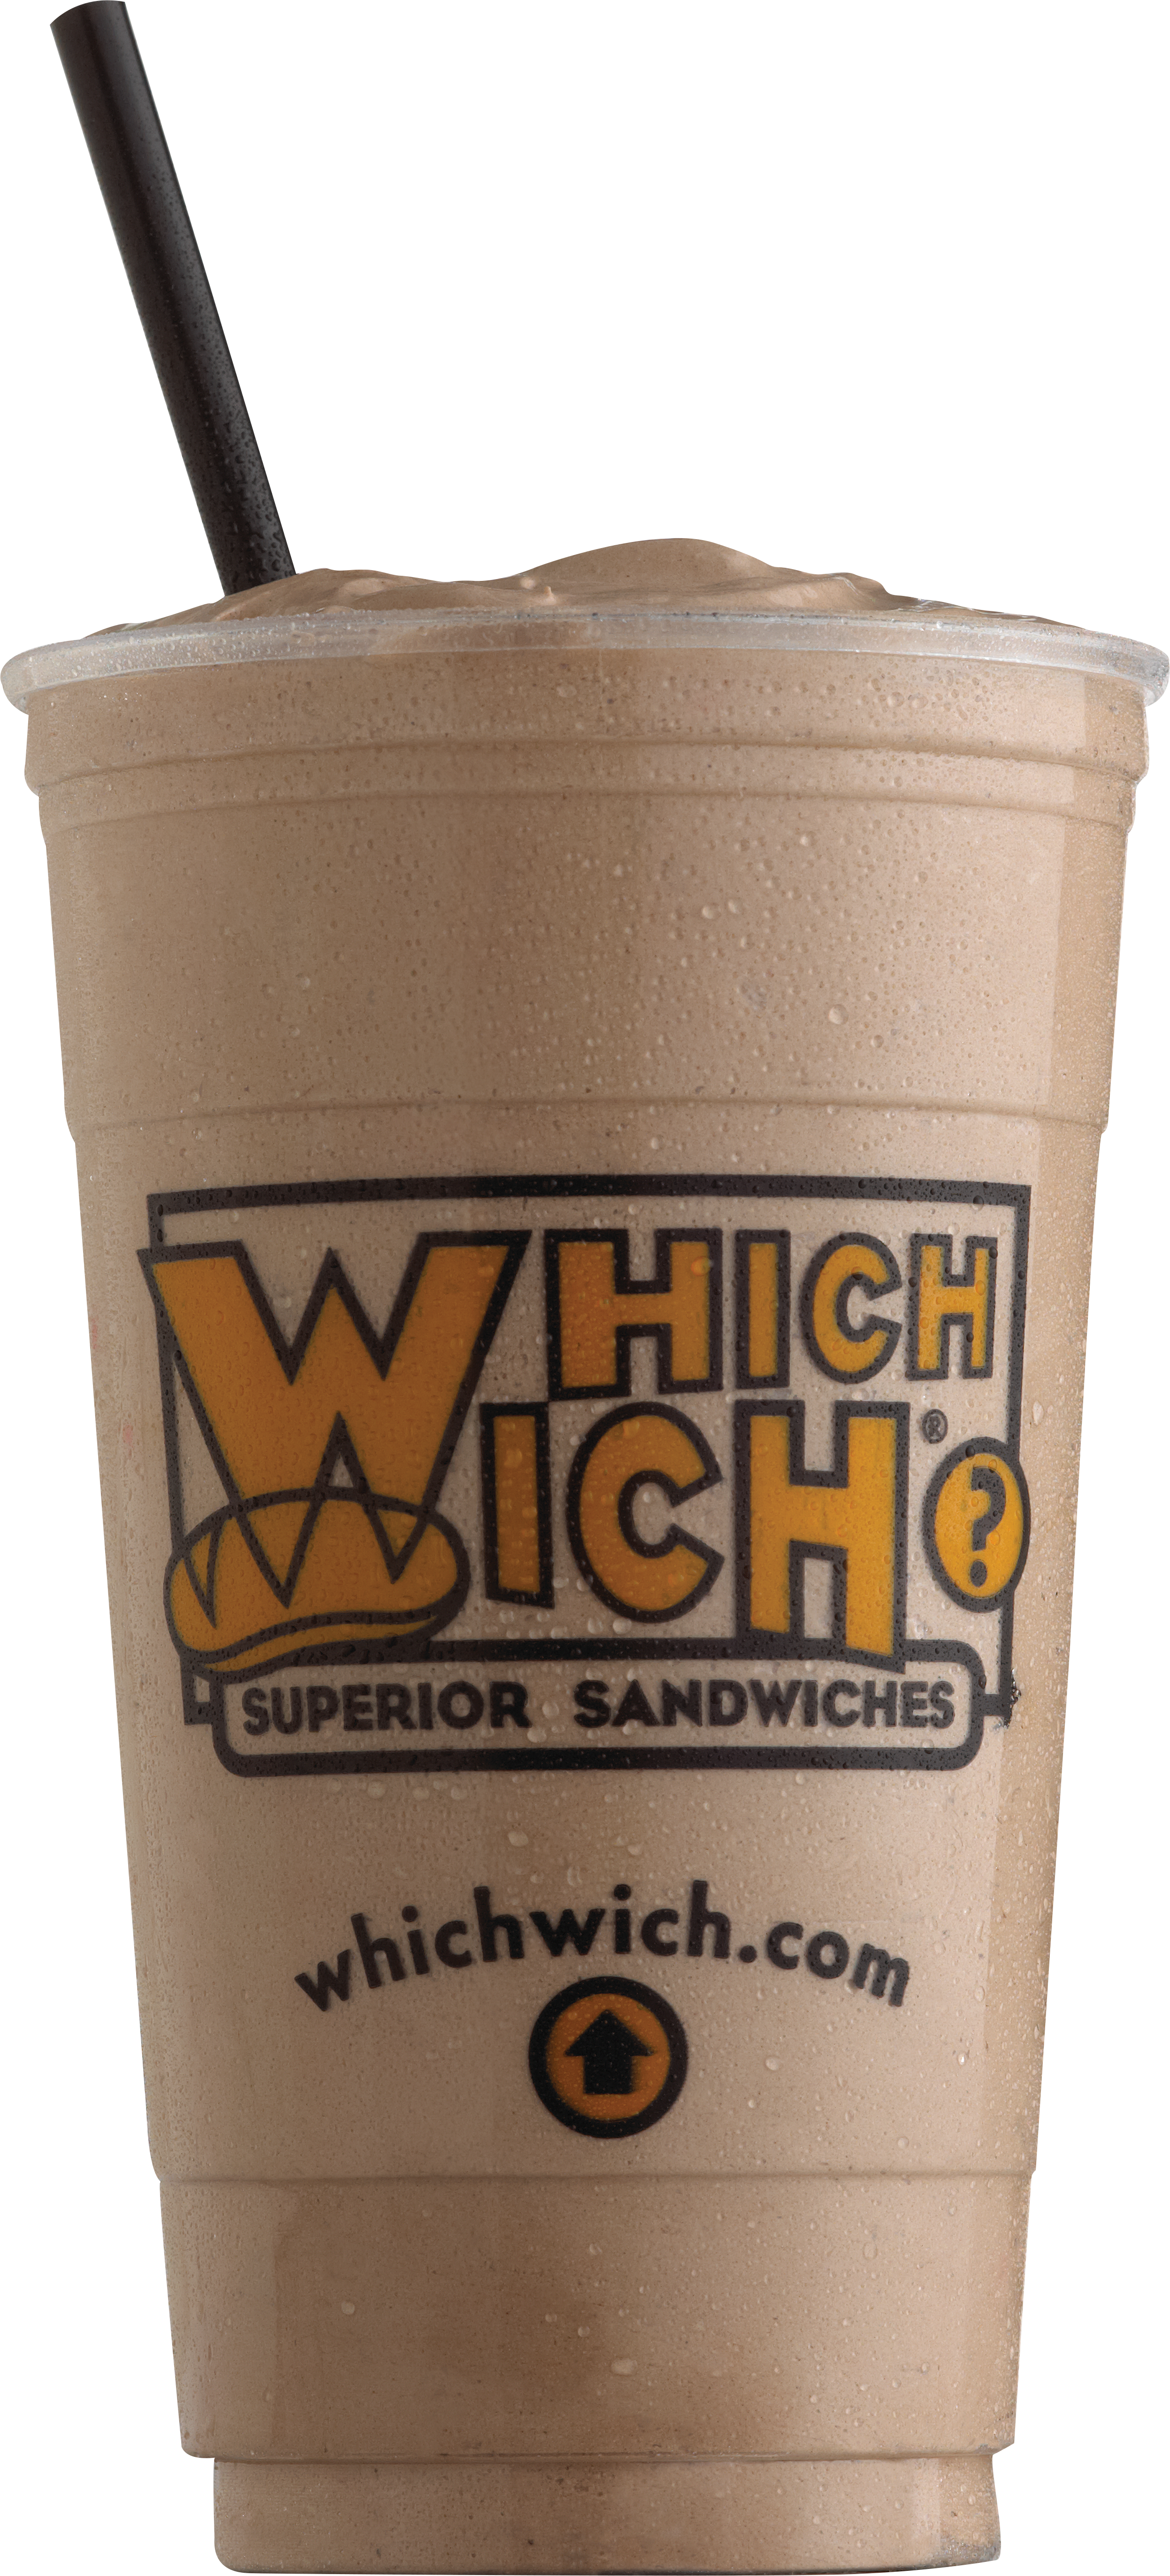 Which wich chocolate milkshake